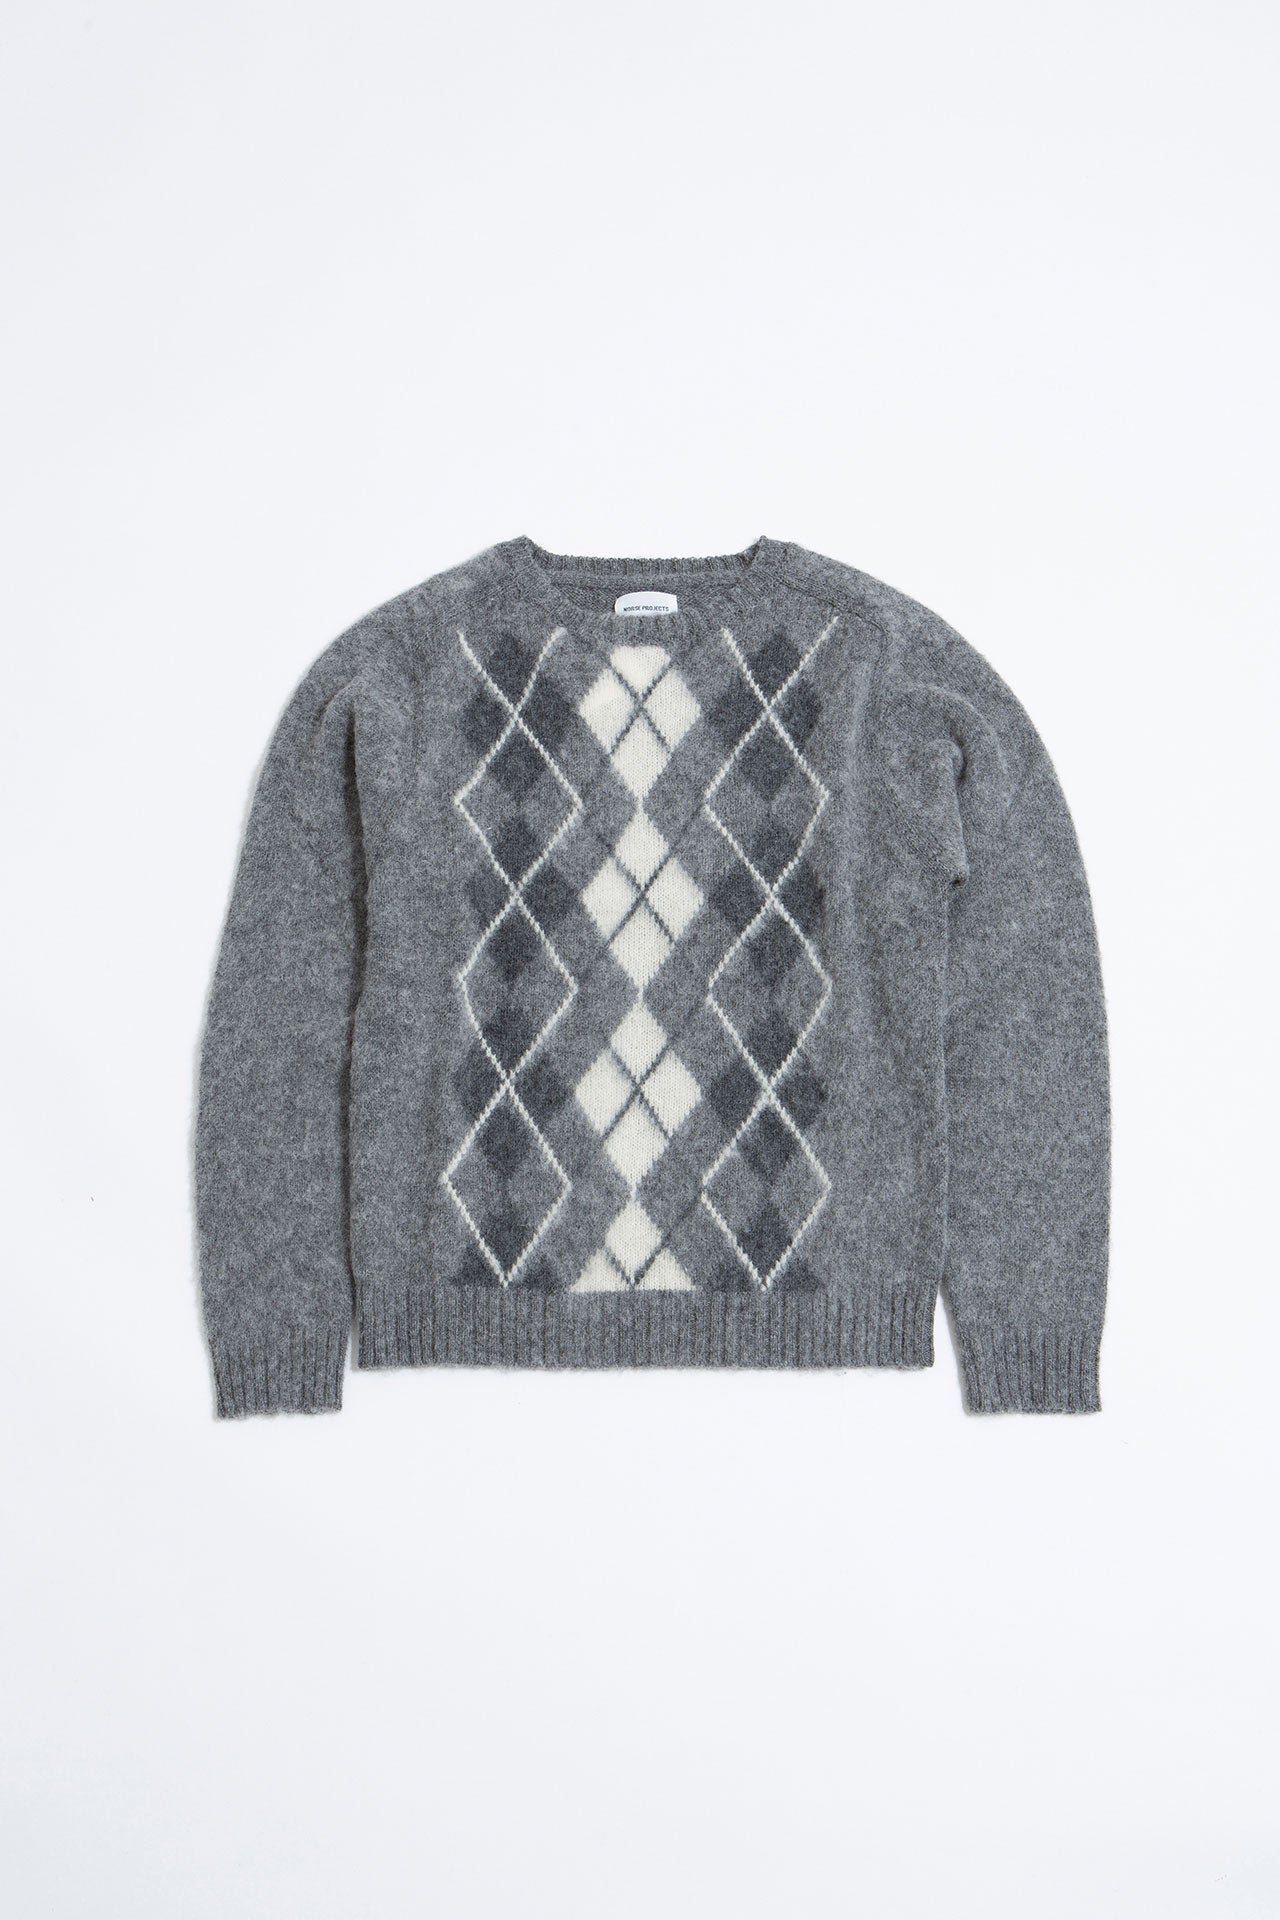 Birnir brushed argyle light grey melange